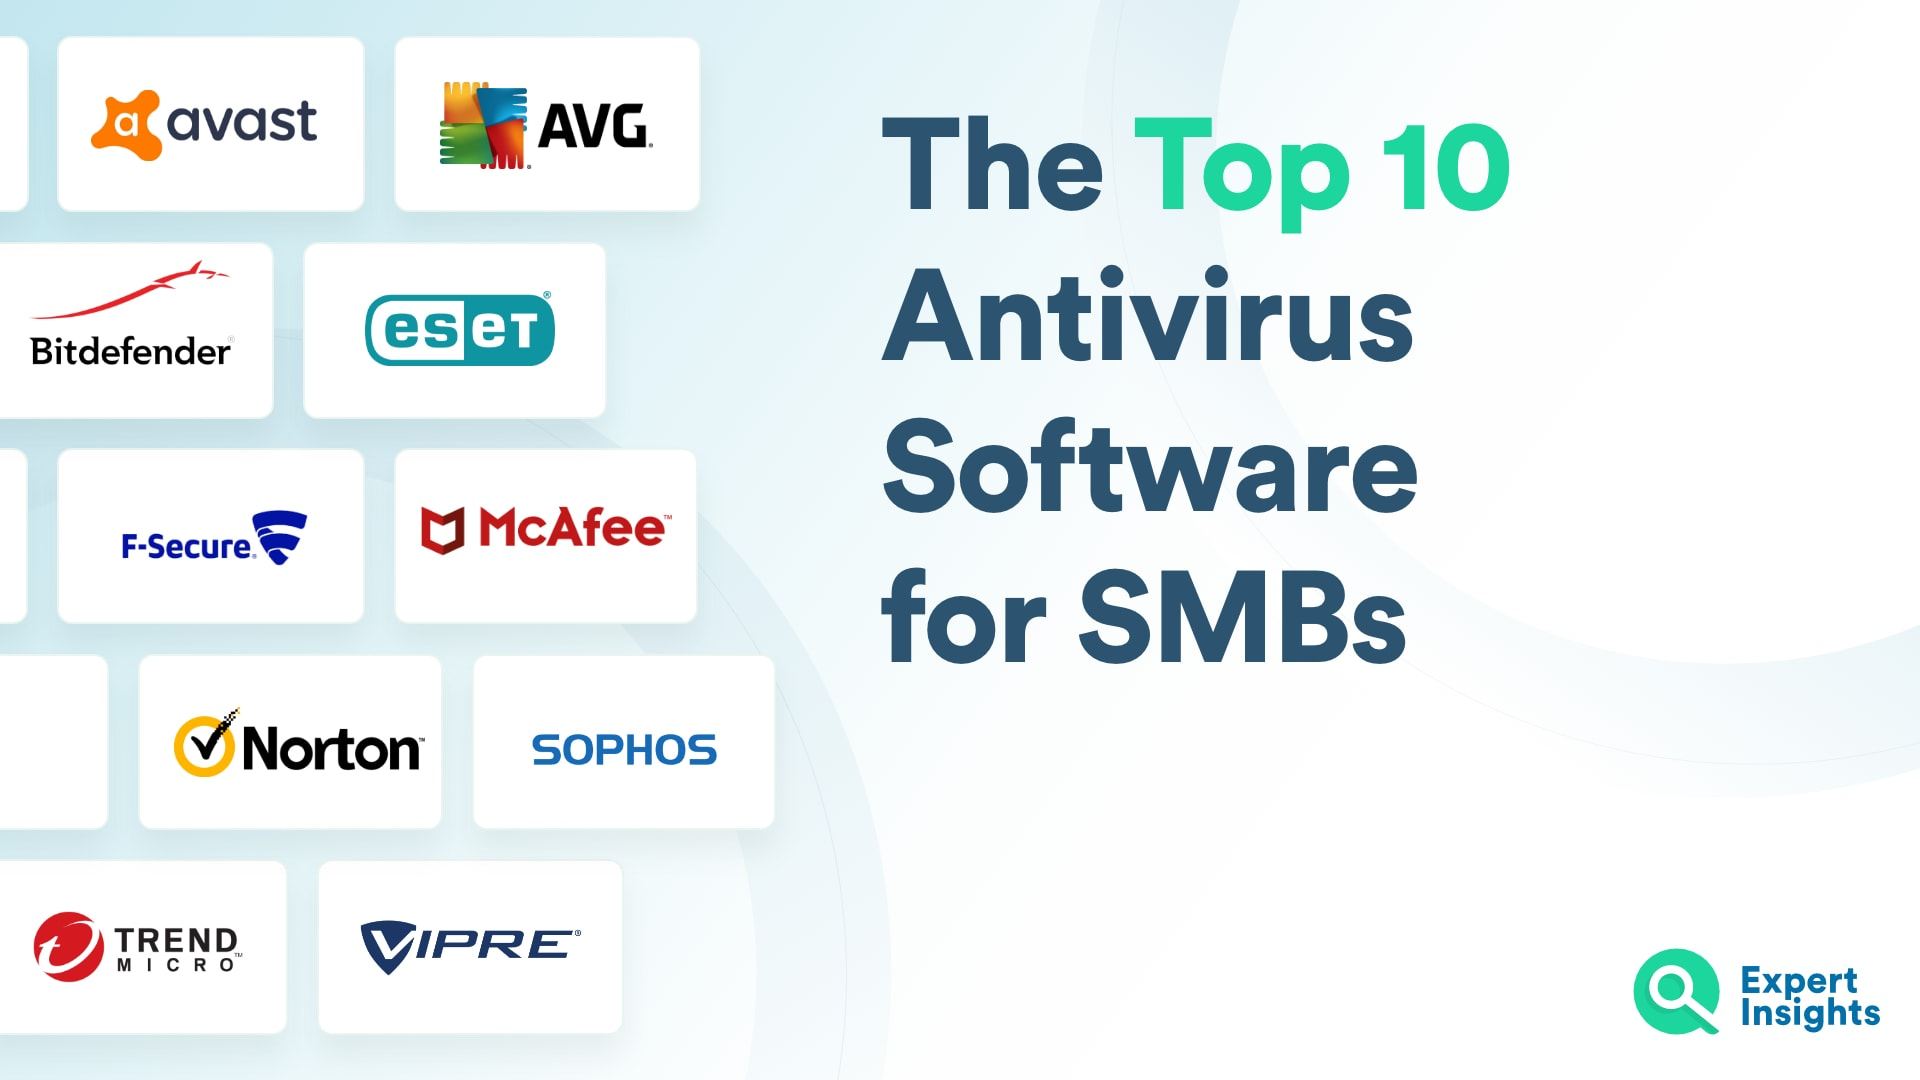 Top 10 Antivirus Software For Small Businesses - Expert Insights